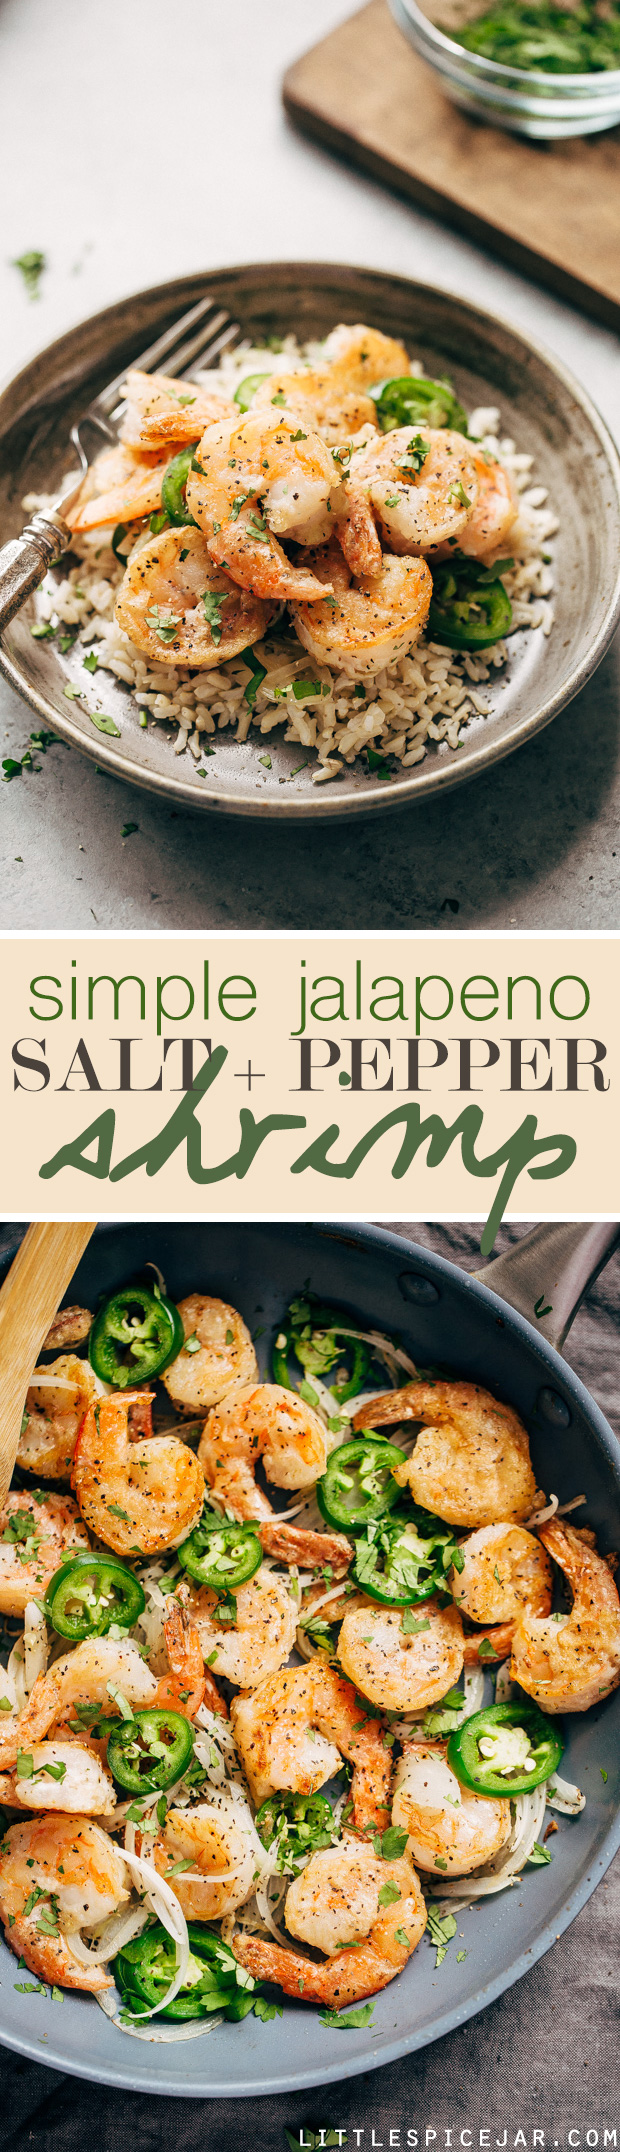 Jalapeno Salt and Pepper Shrimp - a simple 30 minute recipe for tender and sweet shrimp with a little kick! #jalapenoshrimp #sauteedshrimp #shrimp #saltandpeppershrimp | Littlespicejar.com